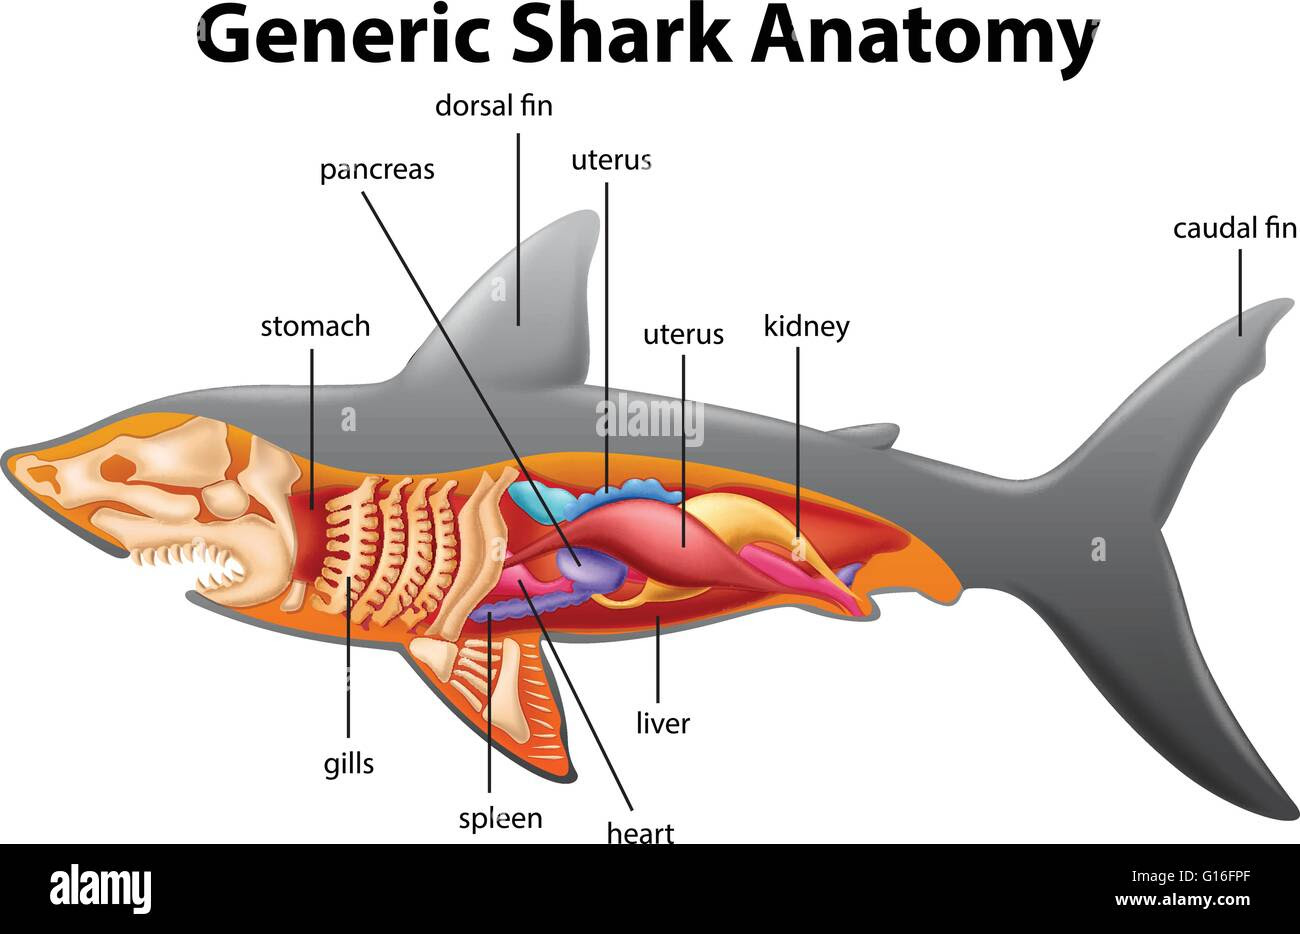 generic shark anatomy chart illustration G16FPF